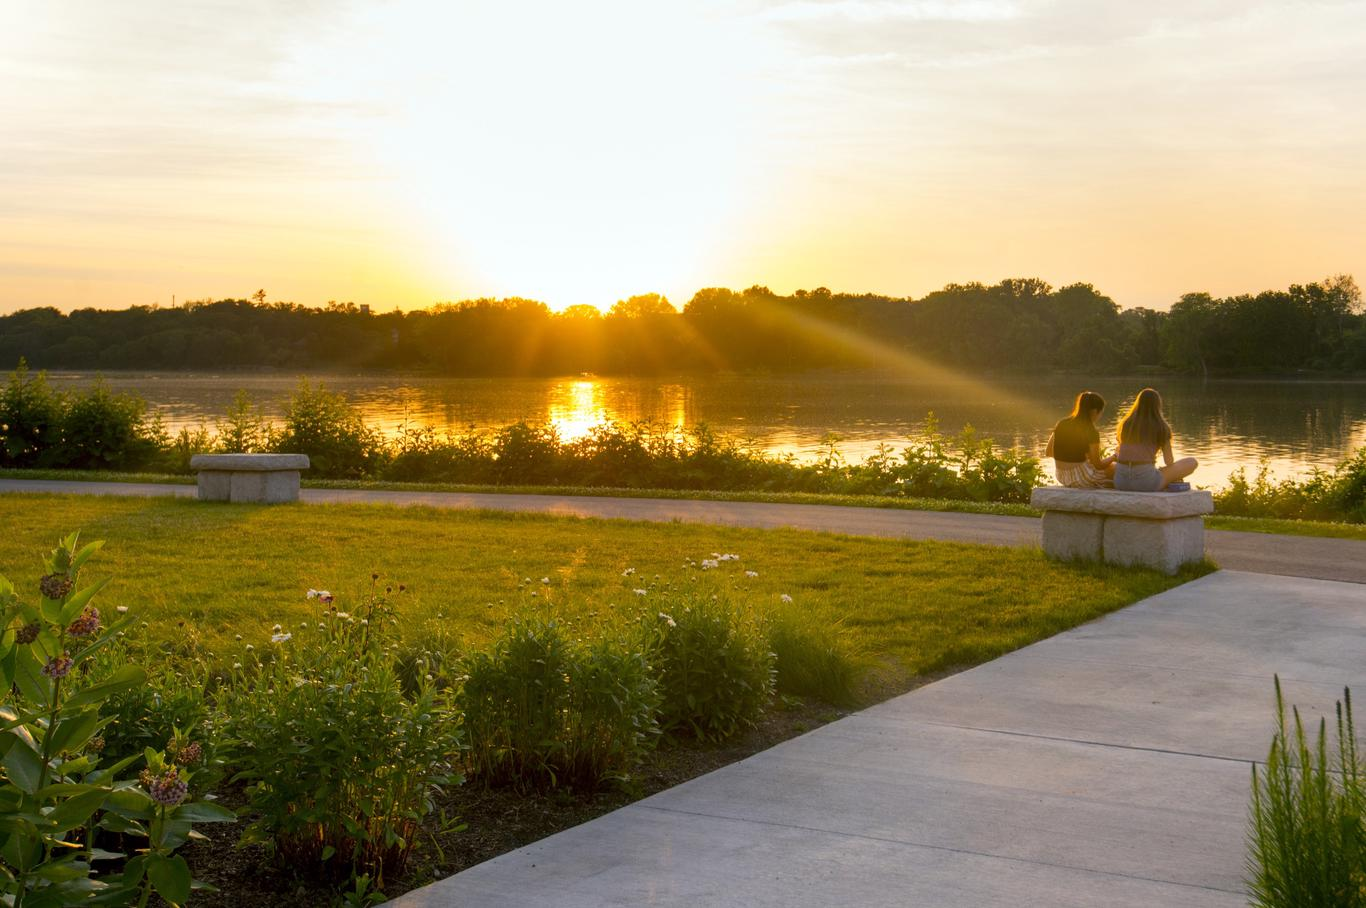 Young women watching the sunset at Perrysburg's multi-level riverfront park pathways that echo the river.